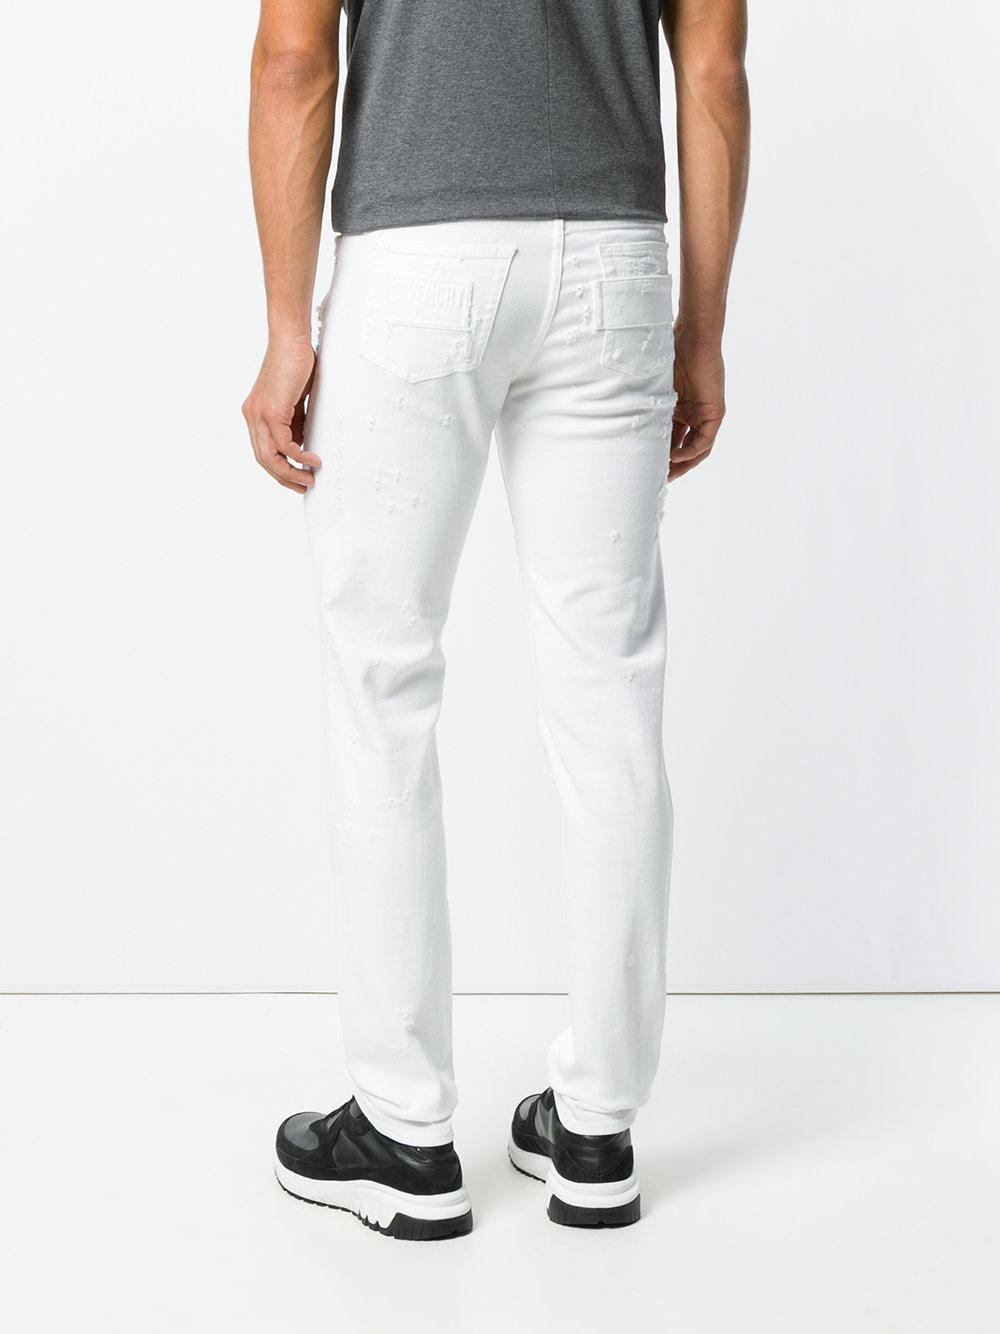 Givenchy Denim Distressed Skinny Jeans in White for Men